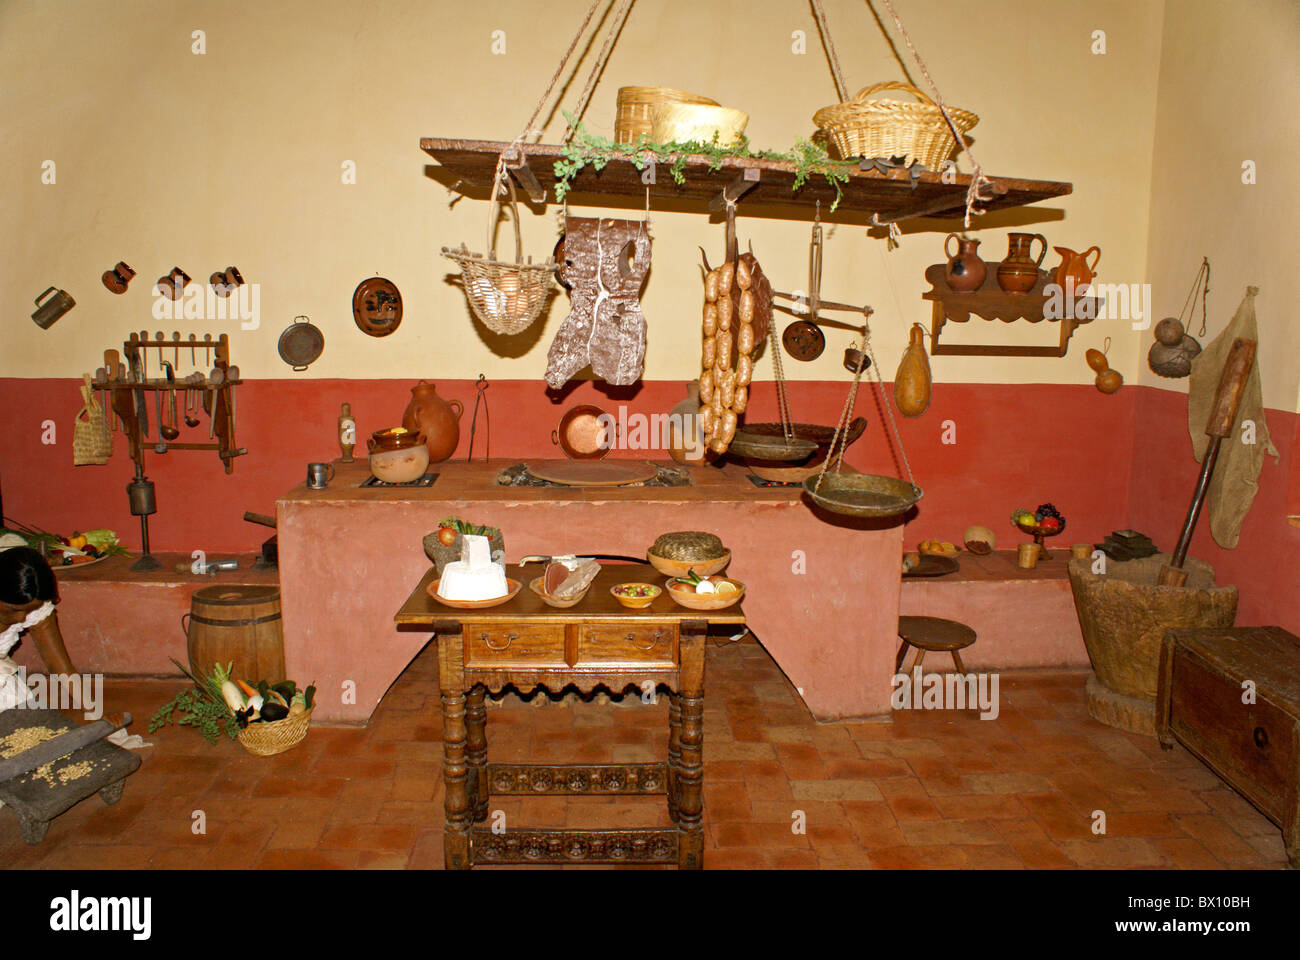 Replica of a traditional mexican kitchen or cocina museo replica of a traditional mexican kitchen or cocina museo historico de san miguel de allende in san miguel de allende mexico arubaitofo Image collections